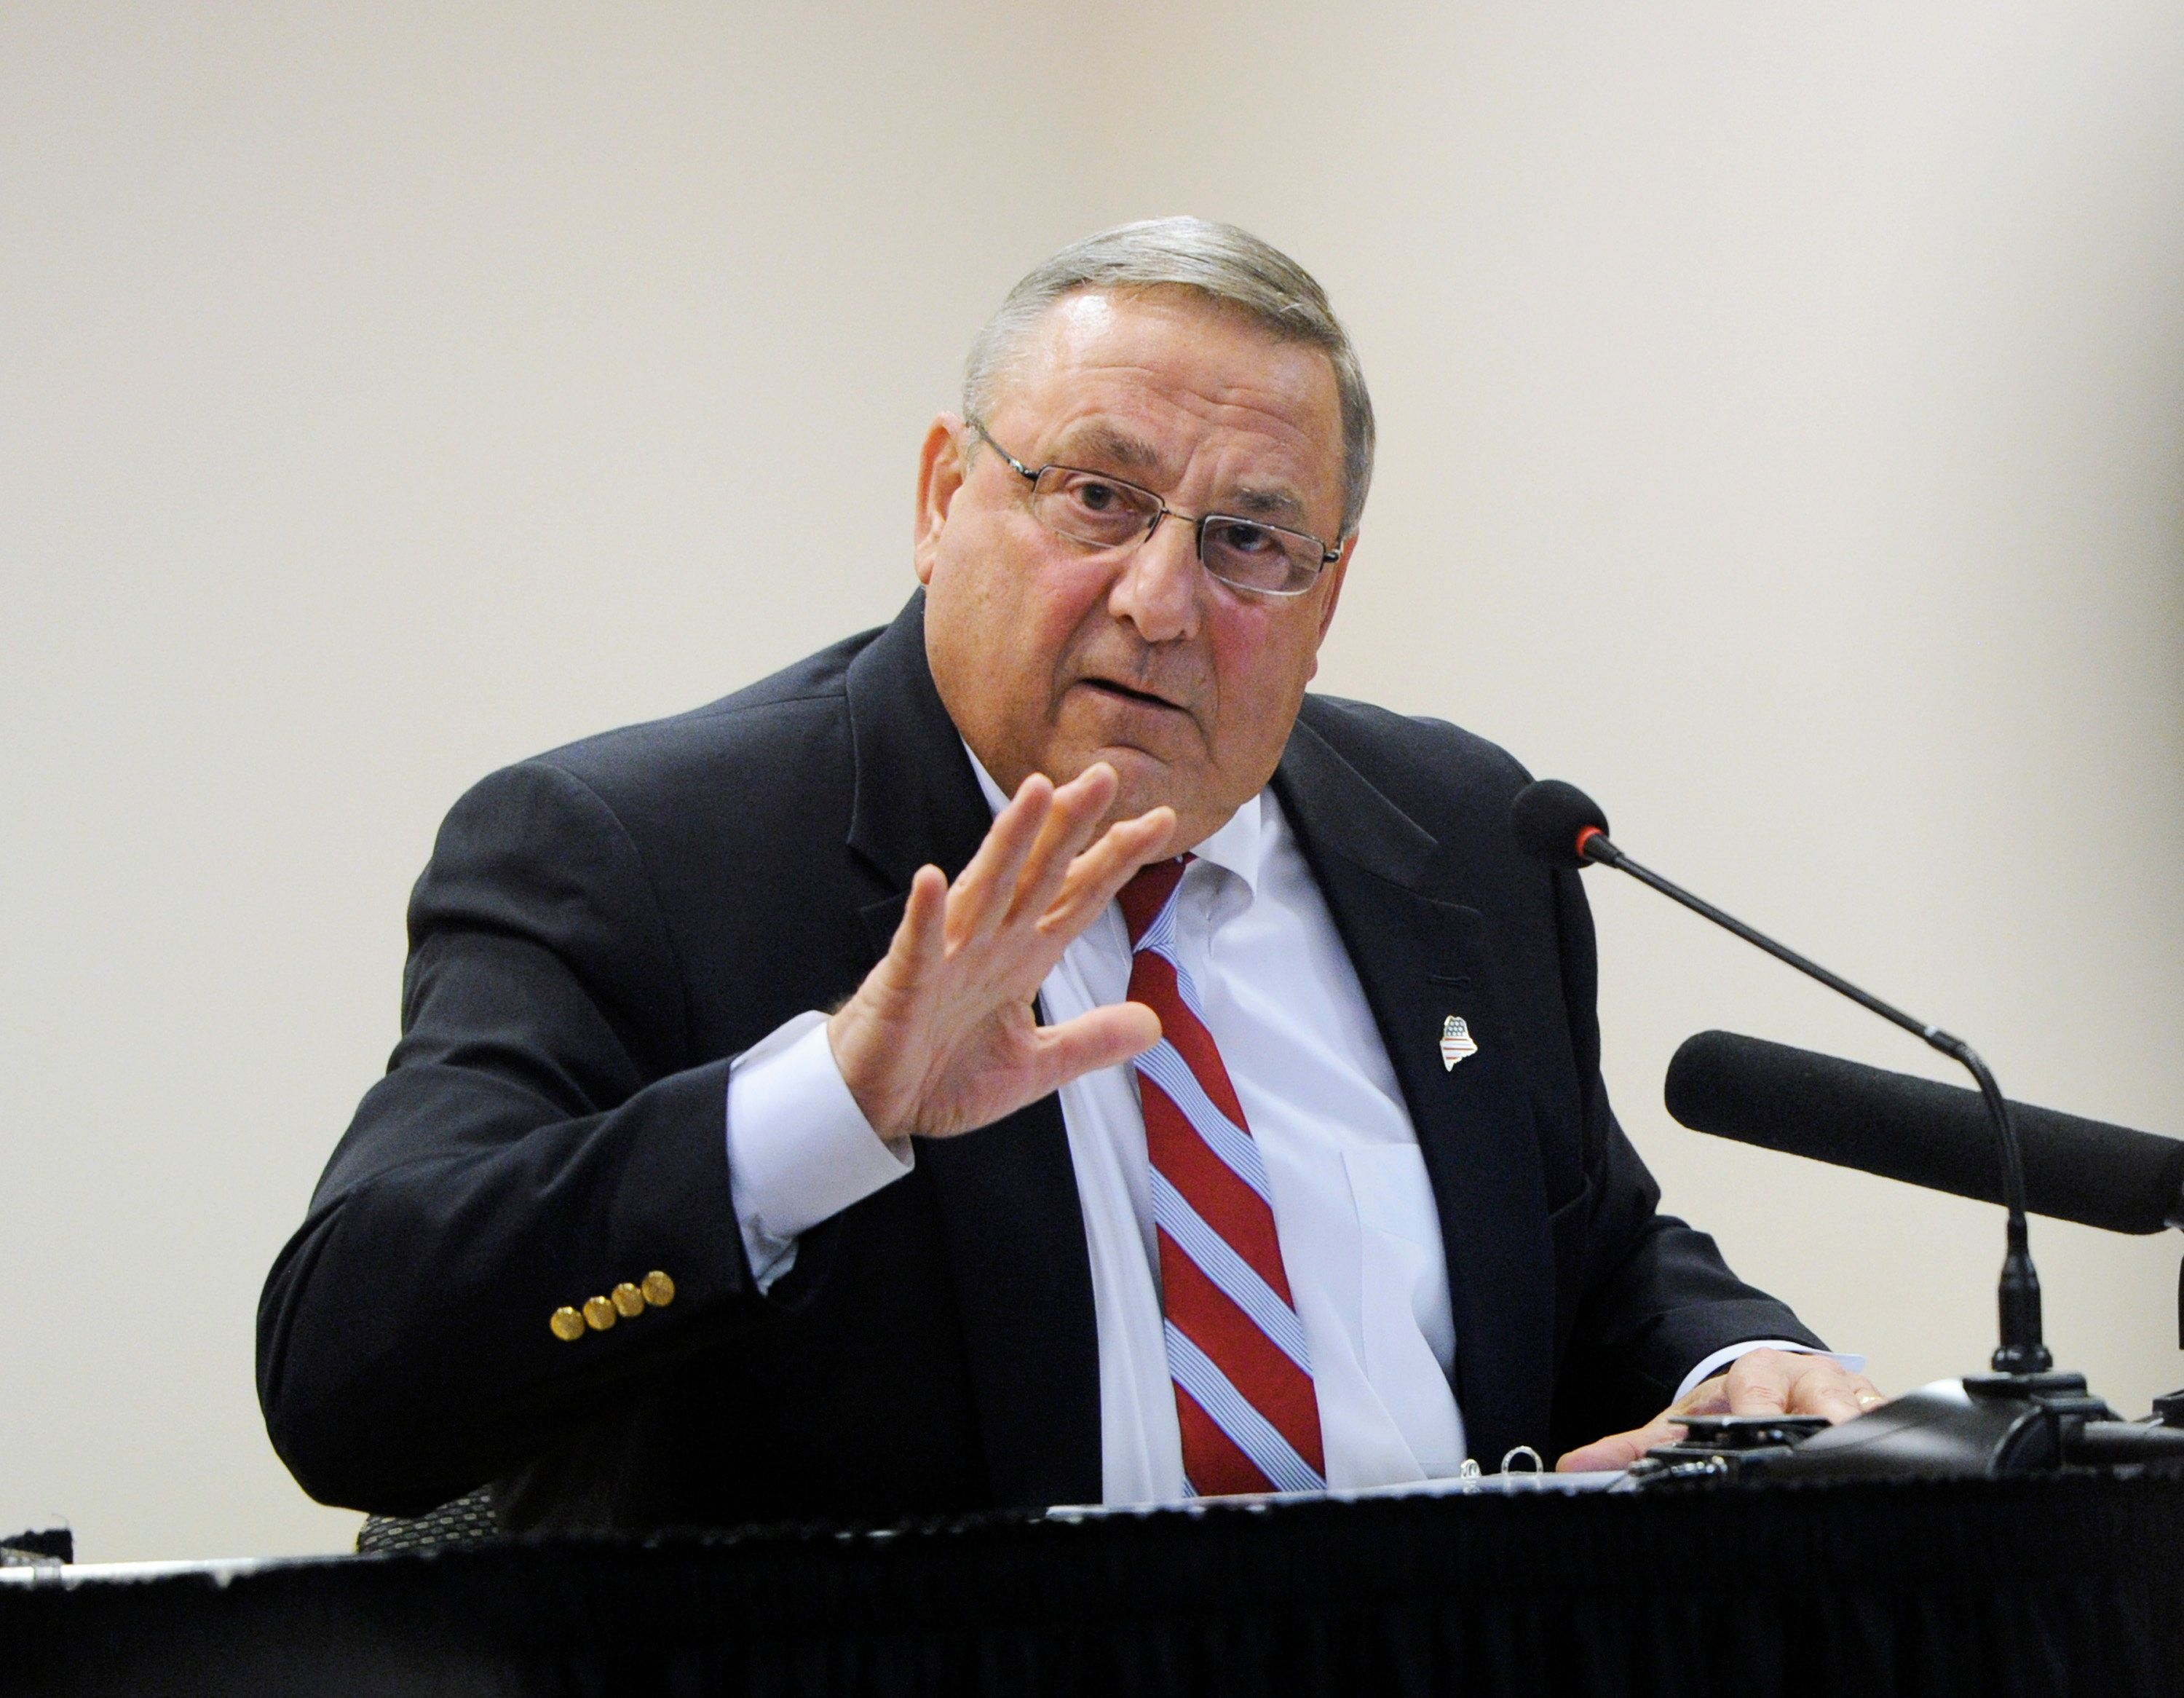 AUBURN, ME - OCTOBER 21: Maine Governor Paul LePage speaks at Central Maine Community College about his central themes of tax reduction, welfare reform and lowering college costs for Maine students. (Photo by Derek Davis/Portland Press Herald via Getty Images)